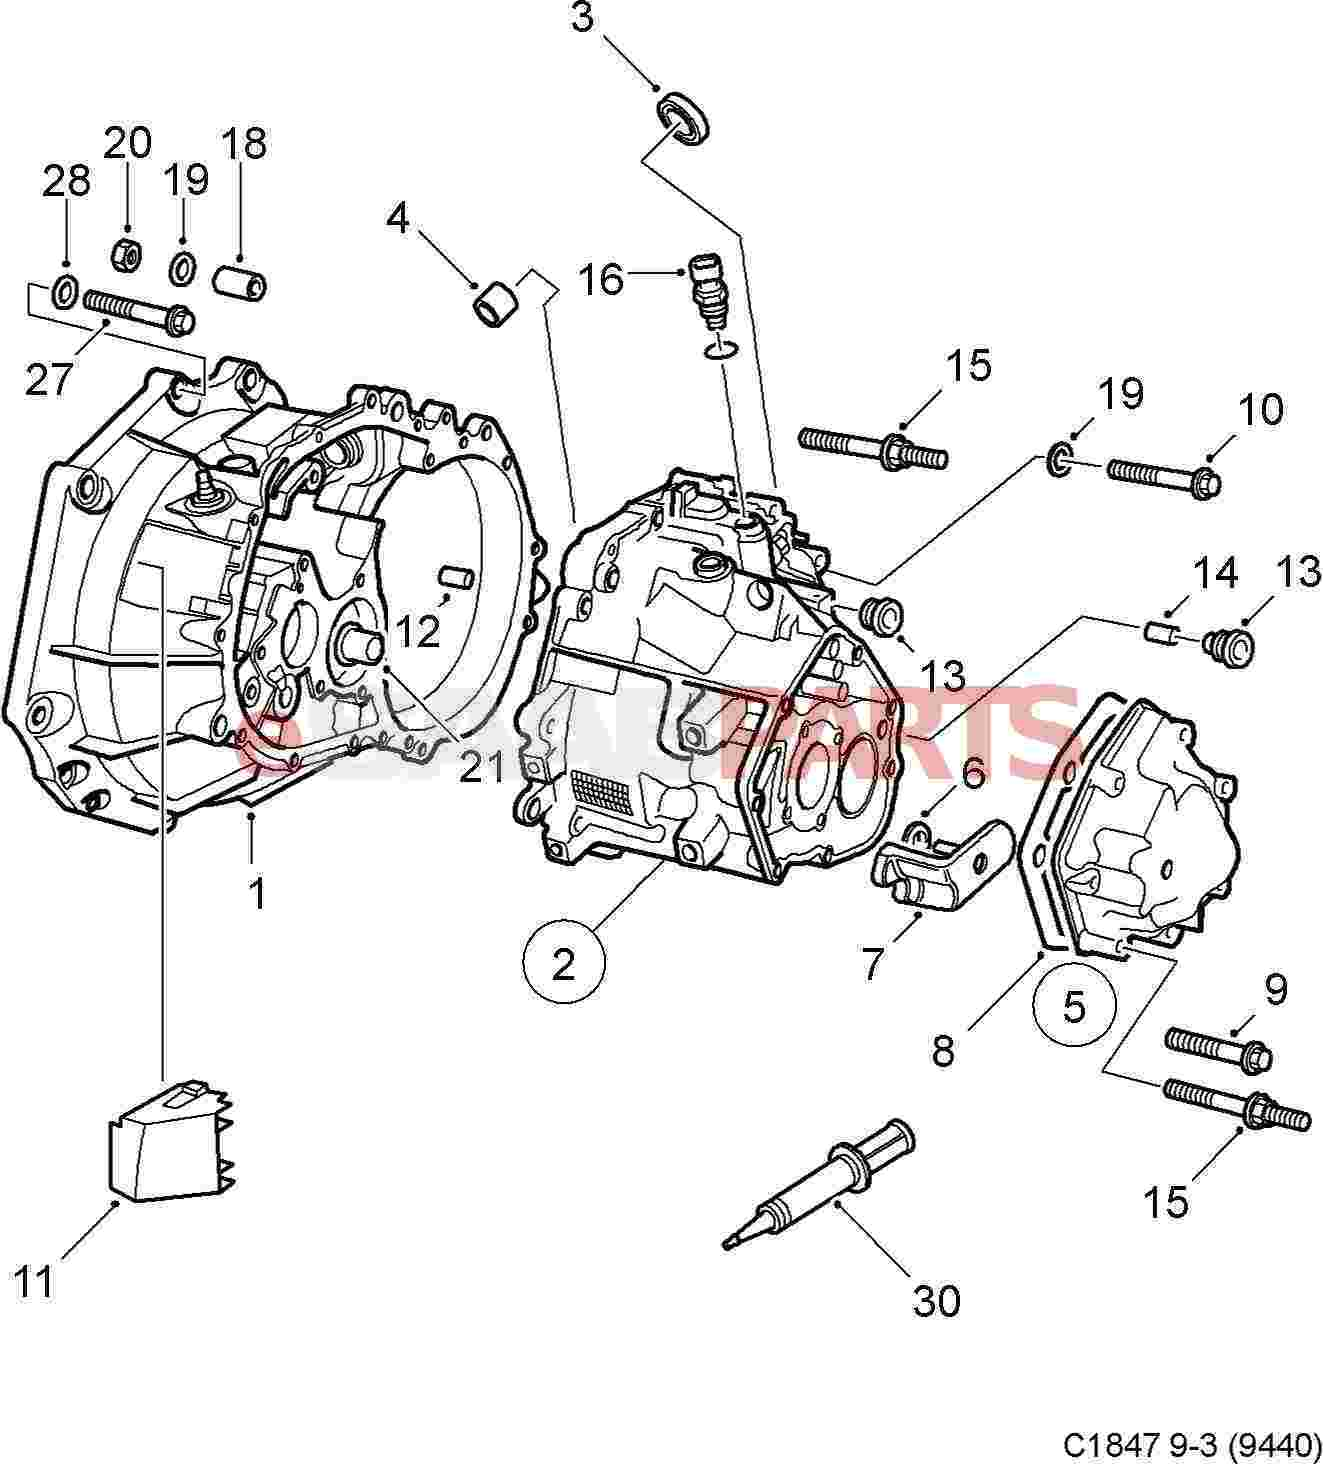 35 Manual Transmission Parts Diagram